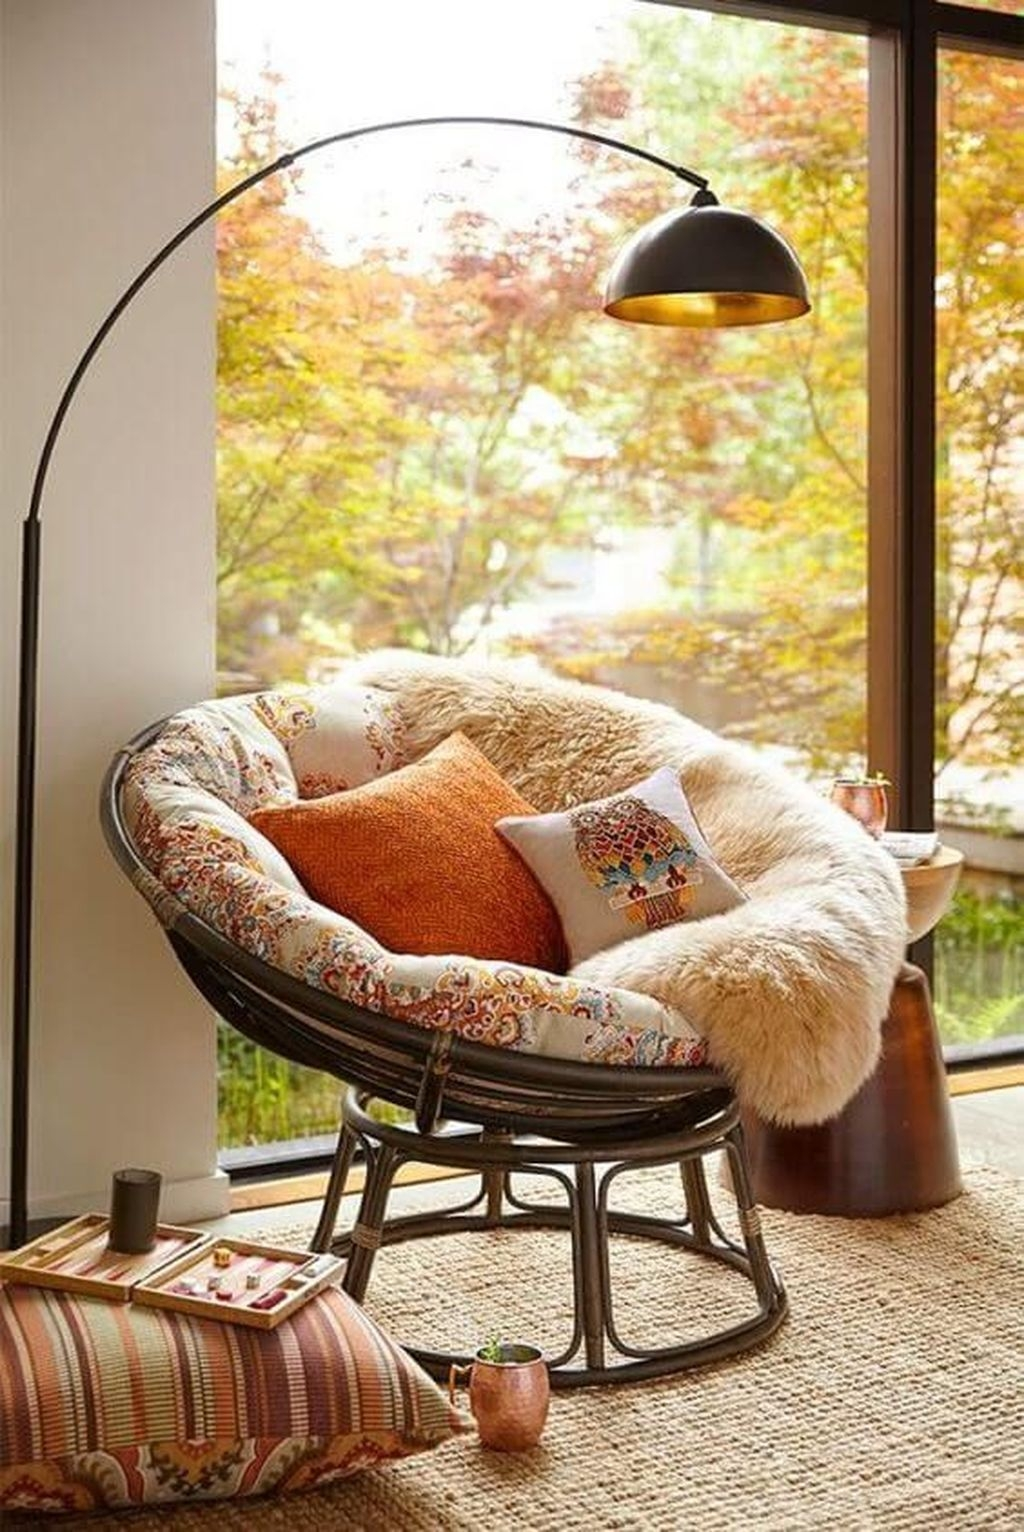 Inspiring Reading Room Decor Ideas To Make You Cozy23